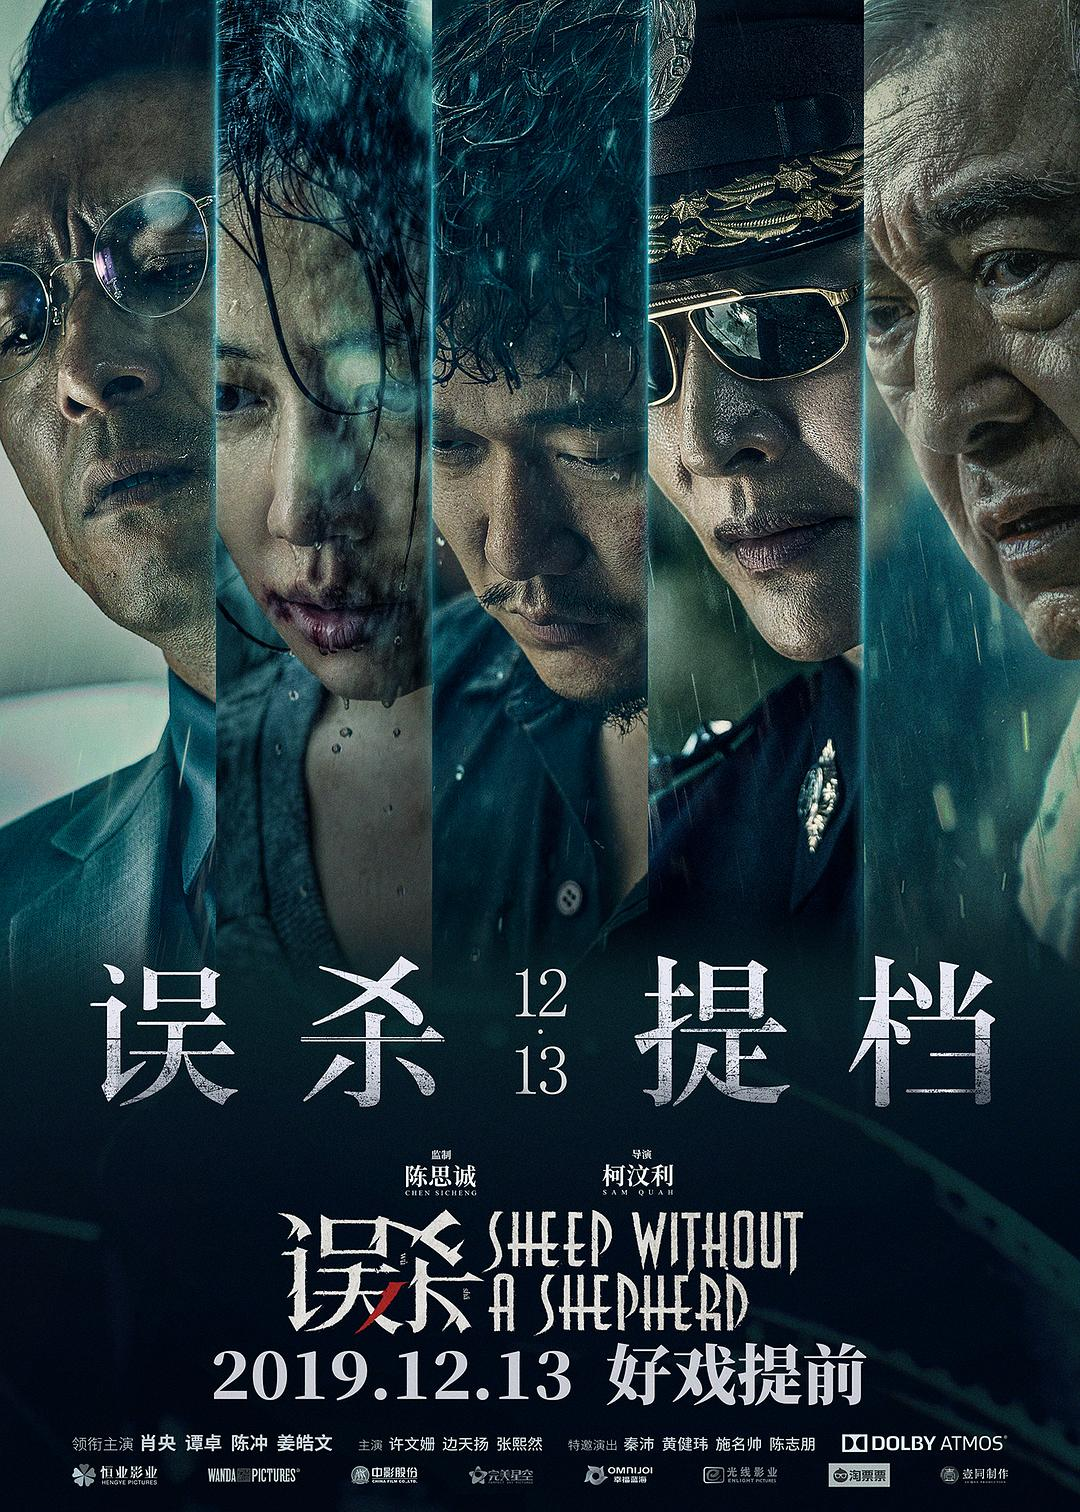 Sheep Without A Shepherd 2019 Review Asian Film Strike